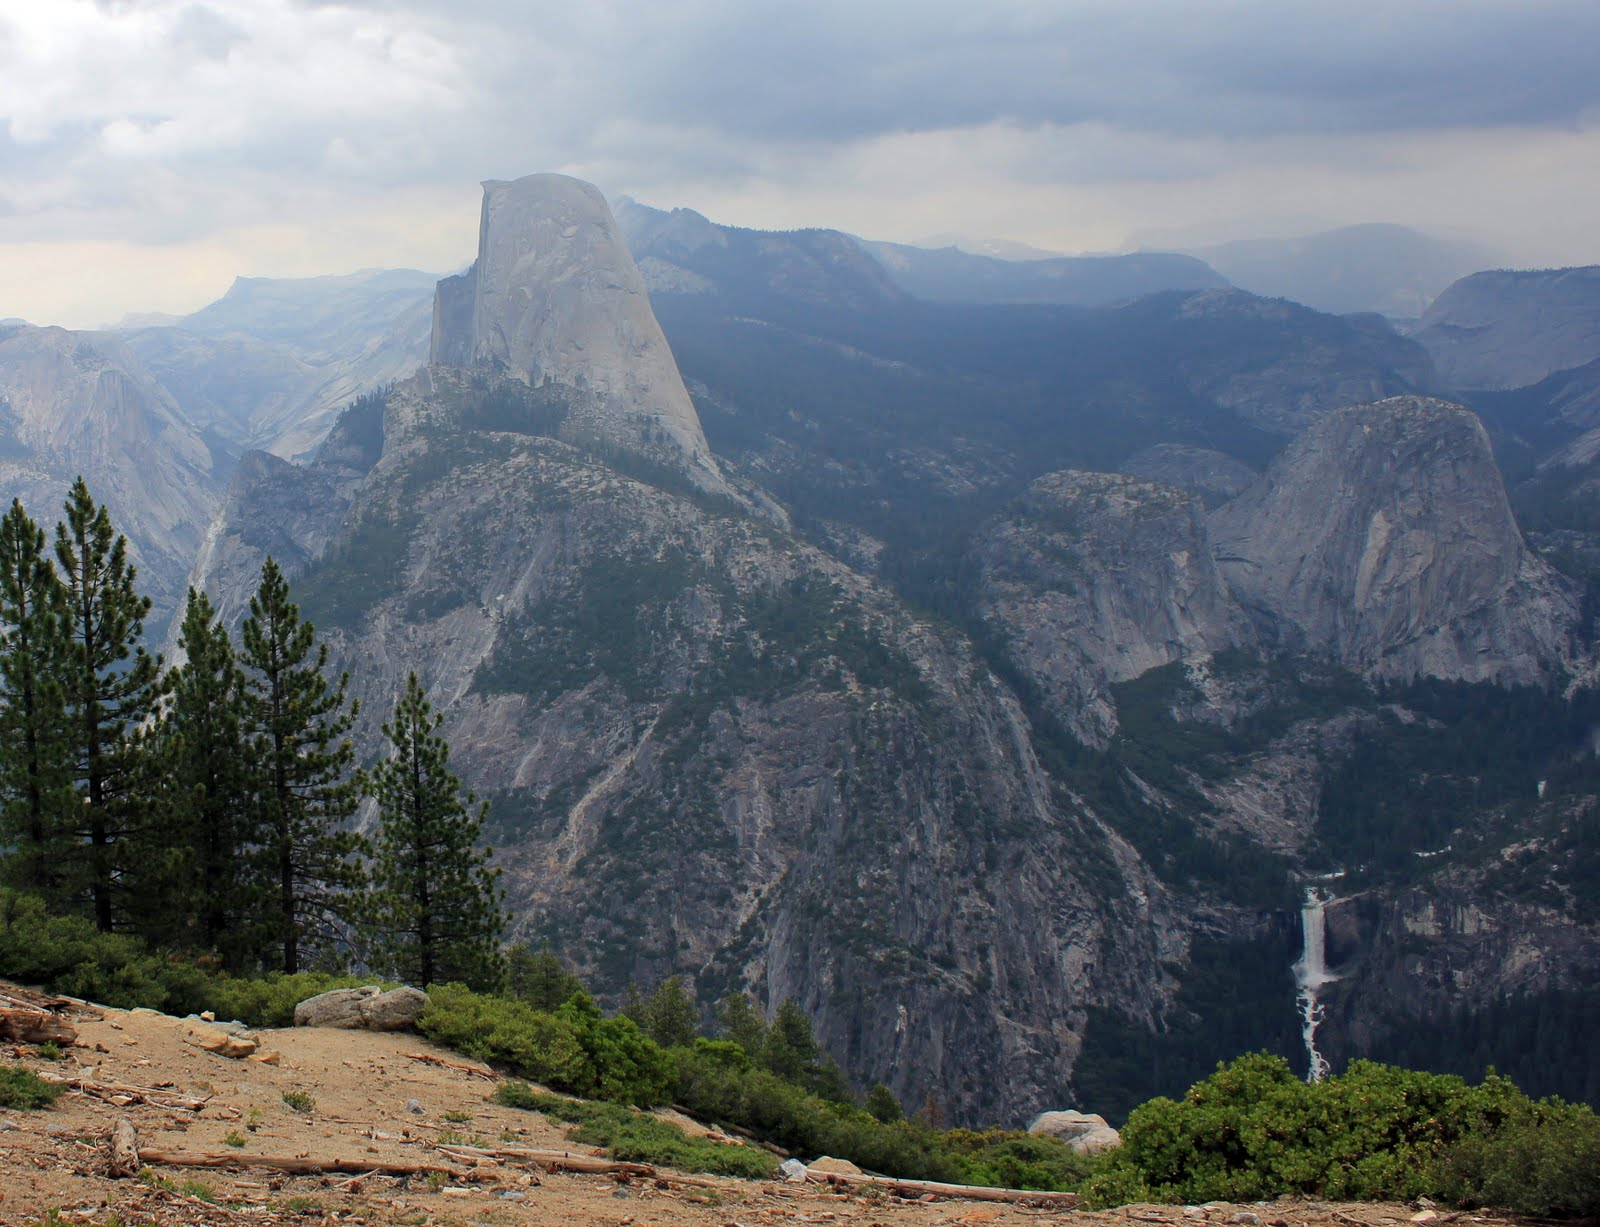 2011 – Le parc national de Yosemite